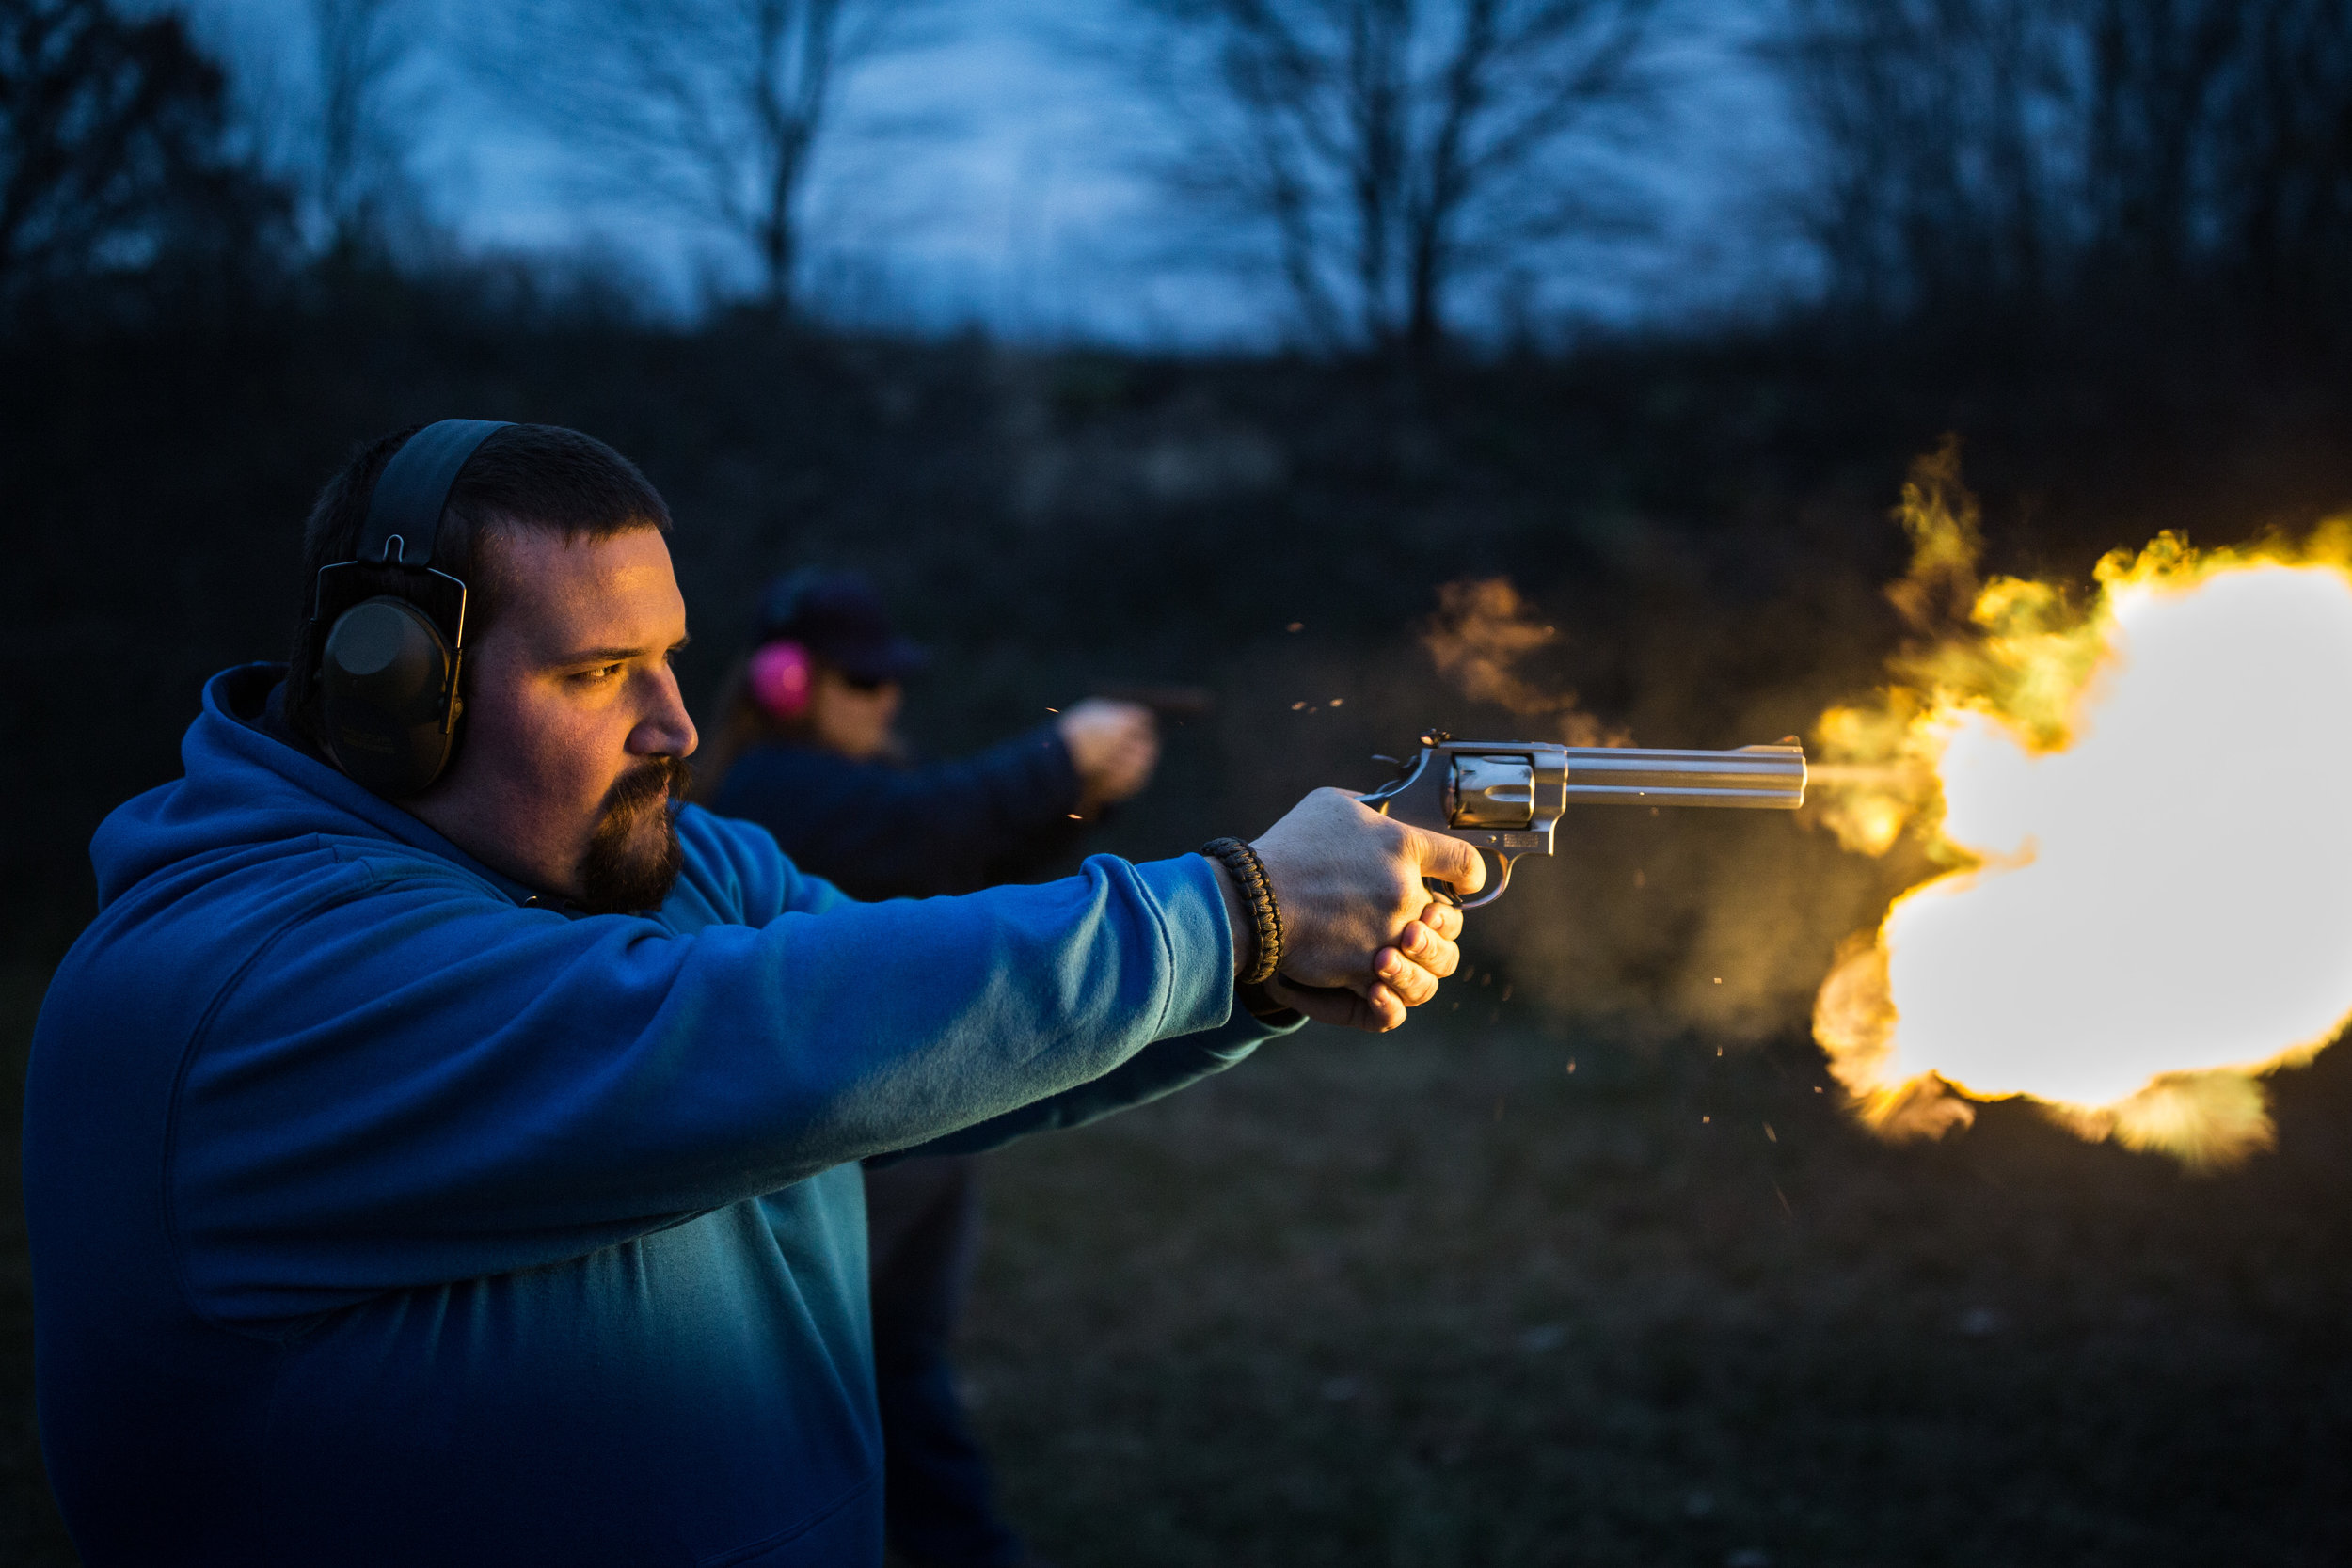 """Daniel Prewett, a member of the Black Creek Conservation Club, shoots pumpkins with his gun, """"Thumper,"""" during the club's Fall Harvest Festival at the club's gun range in Mount Pleasant, Mich. on Sunday, Oct. 29, 2017. In August 2017, former members of the club filed a lawsuit against eight members, including Prewett, claiming that they were members of the Michigan Militia and had taken over the club."""